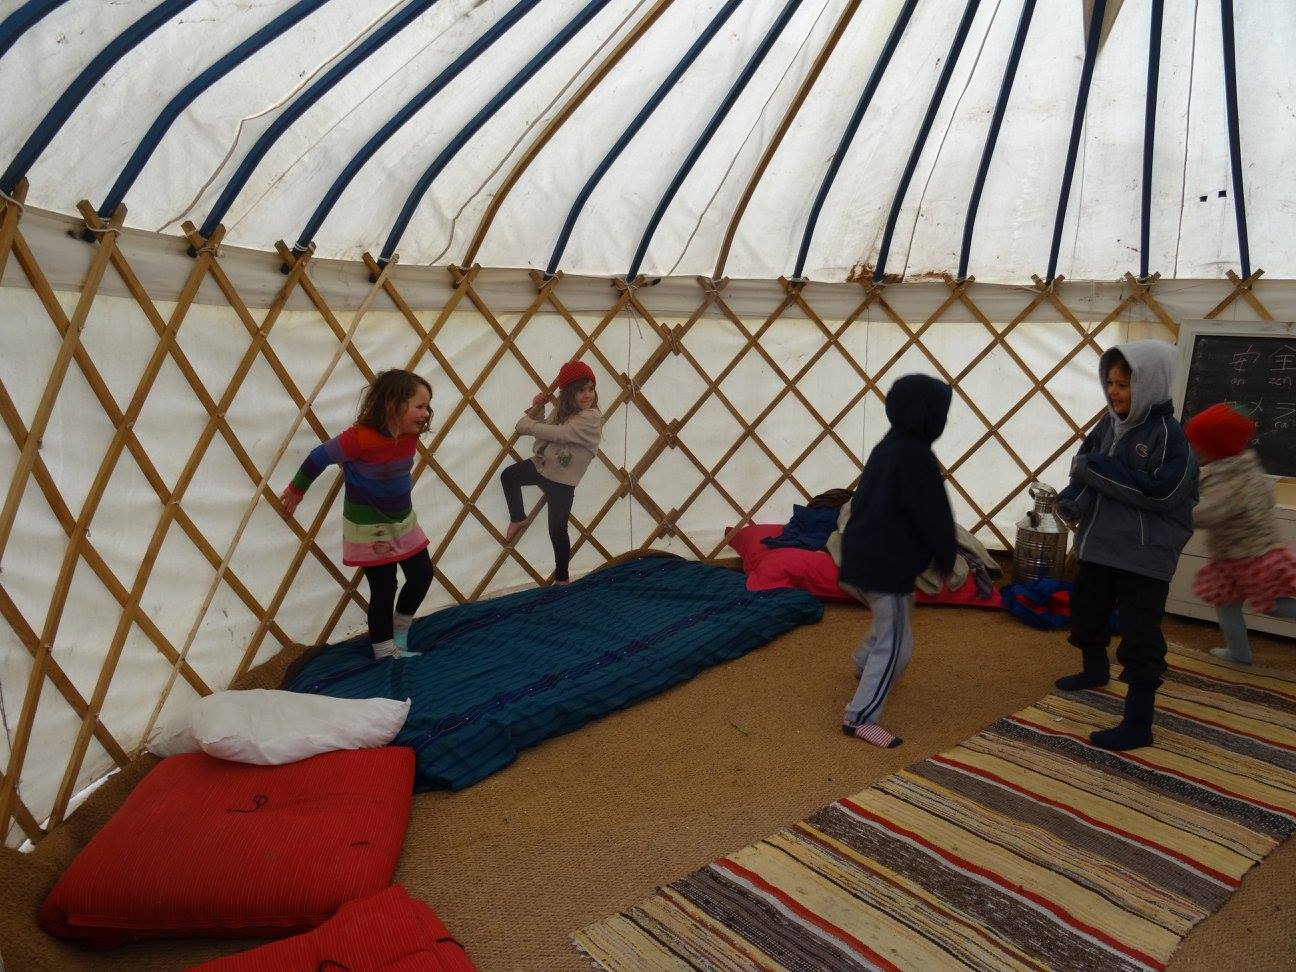 Yet another game of tag in the yurt